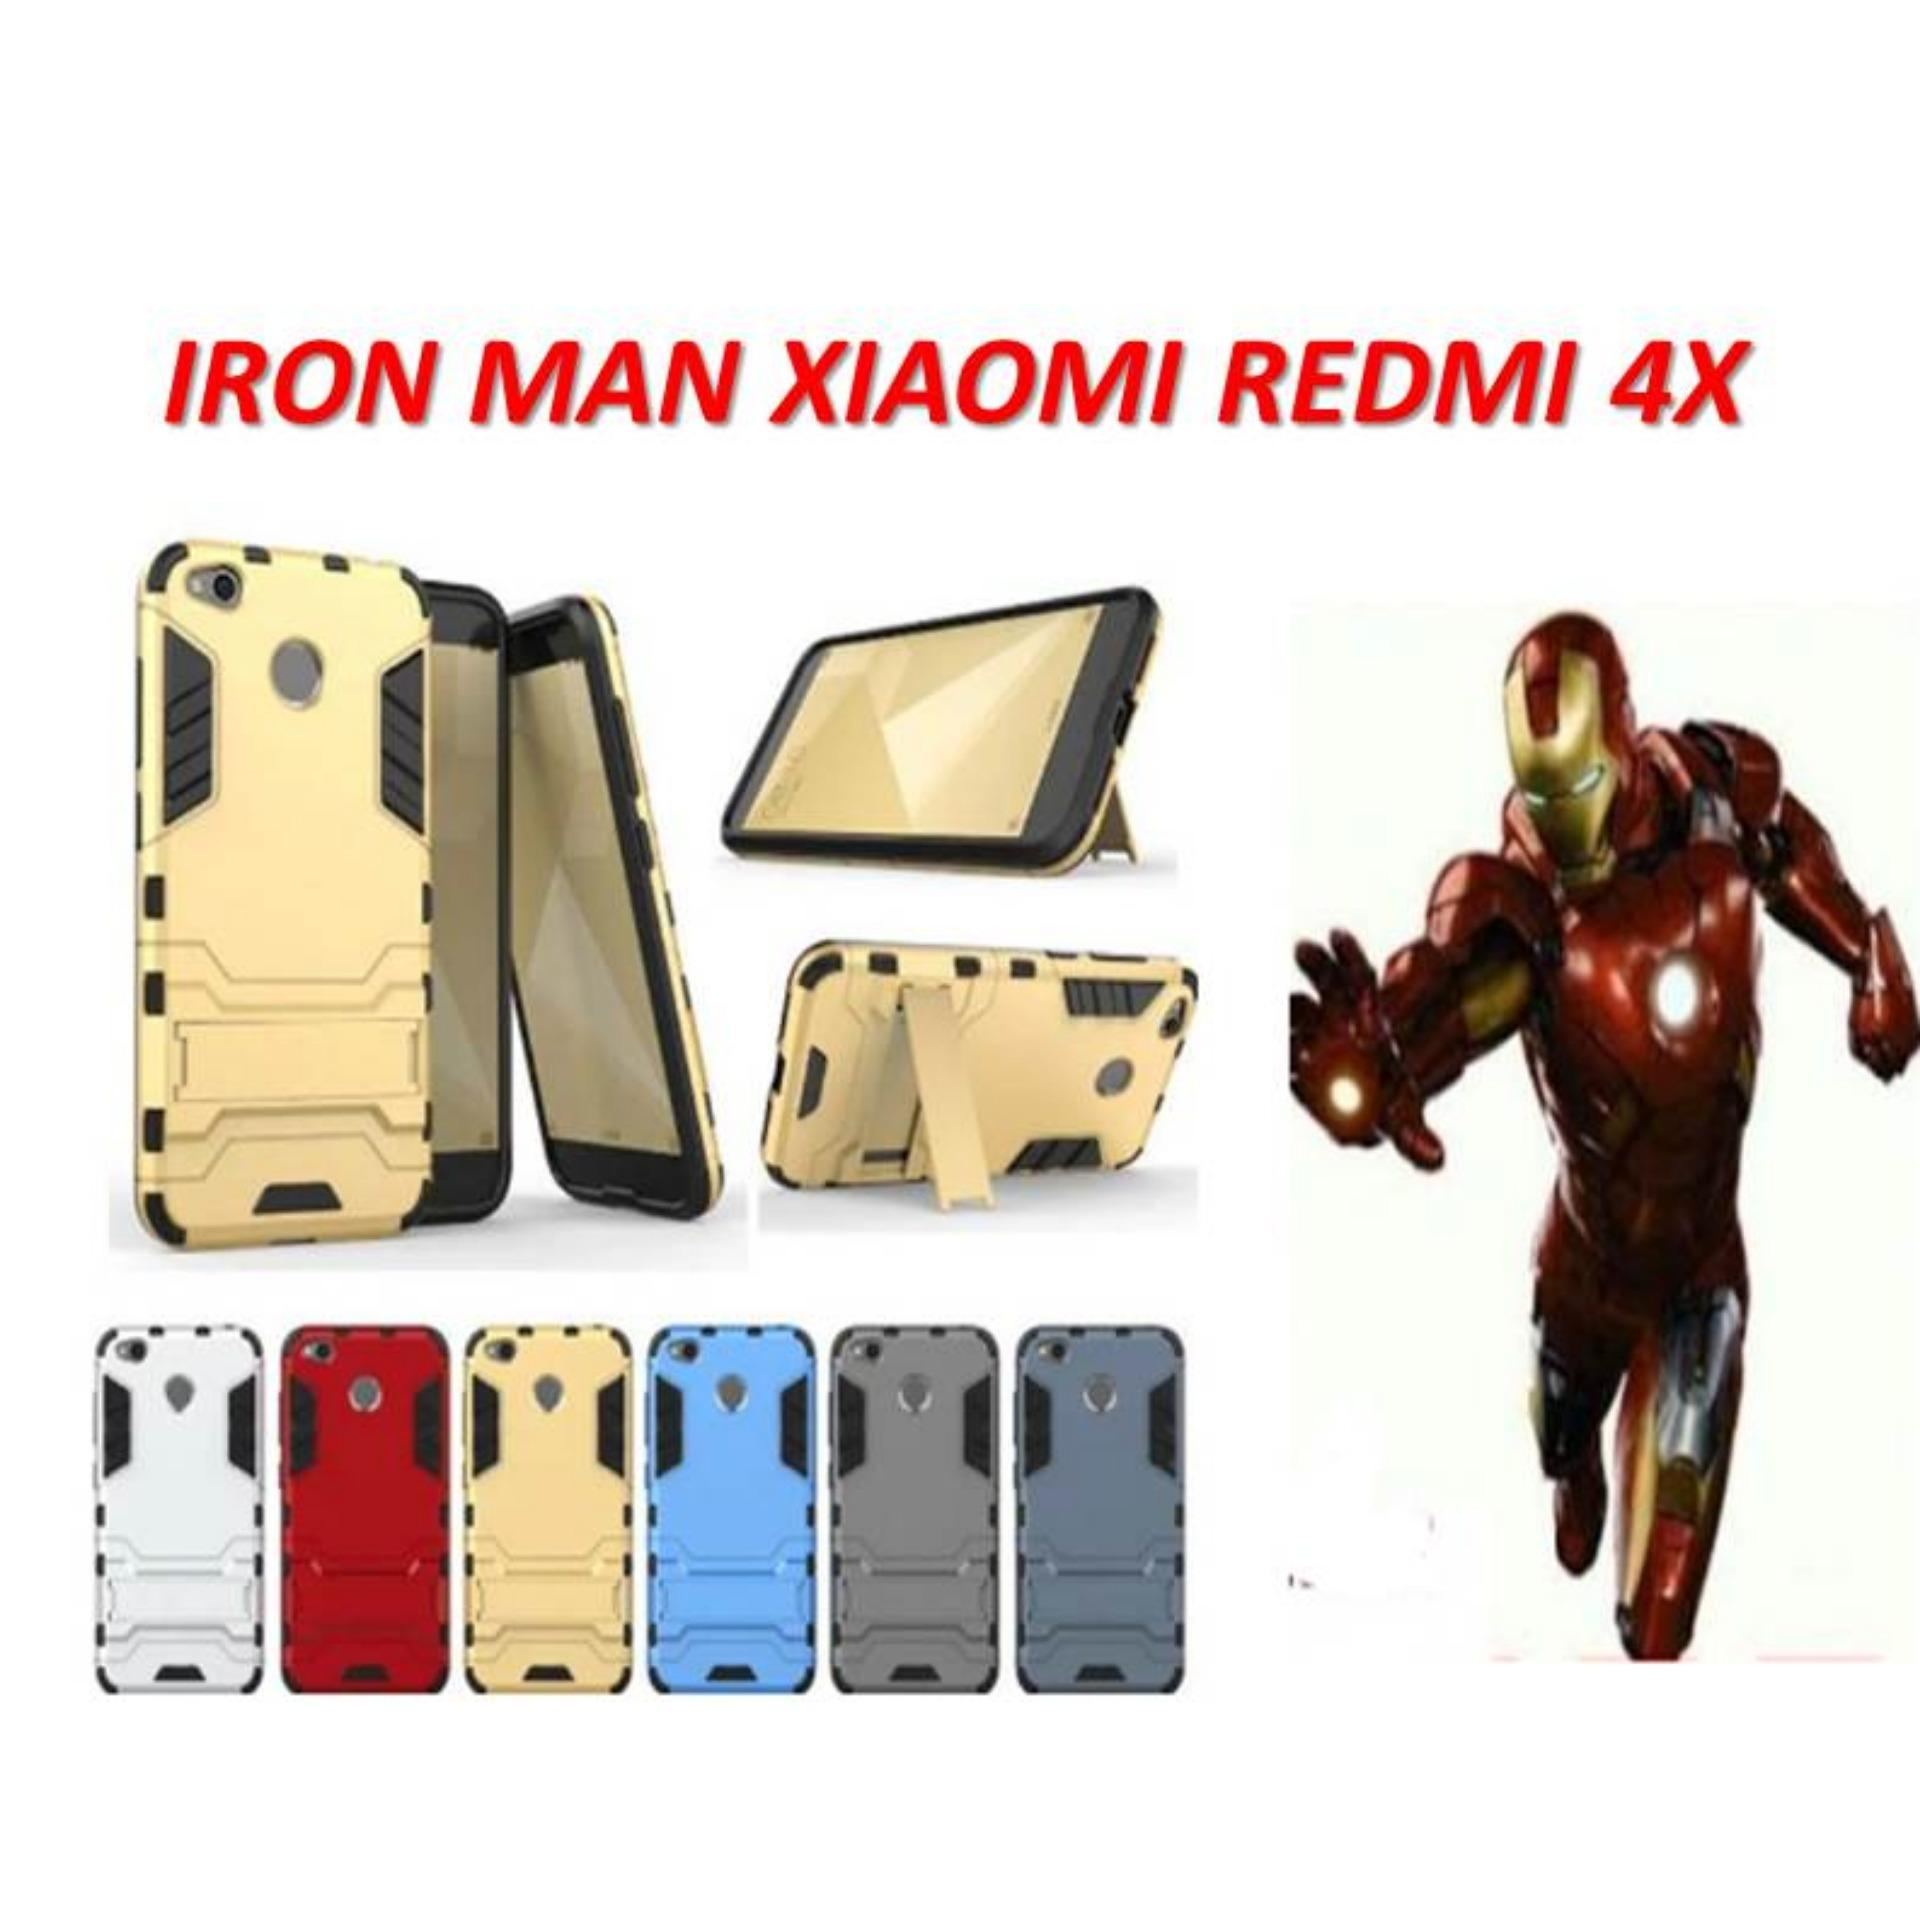 CASE ROBOT TRANSFORMER HARDCASE IRON MAN WITH STANDING FOR XIAOMI REDMI 4X LIMITED EDITION